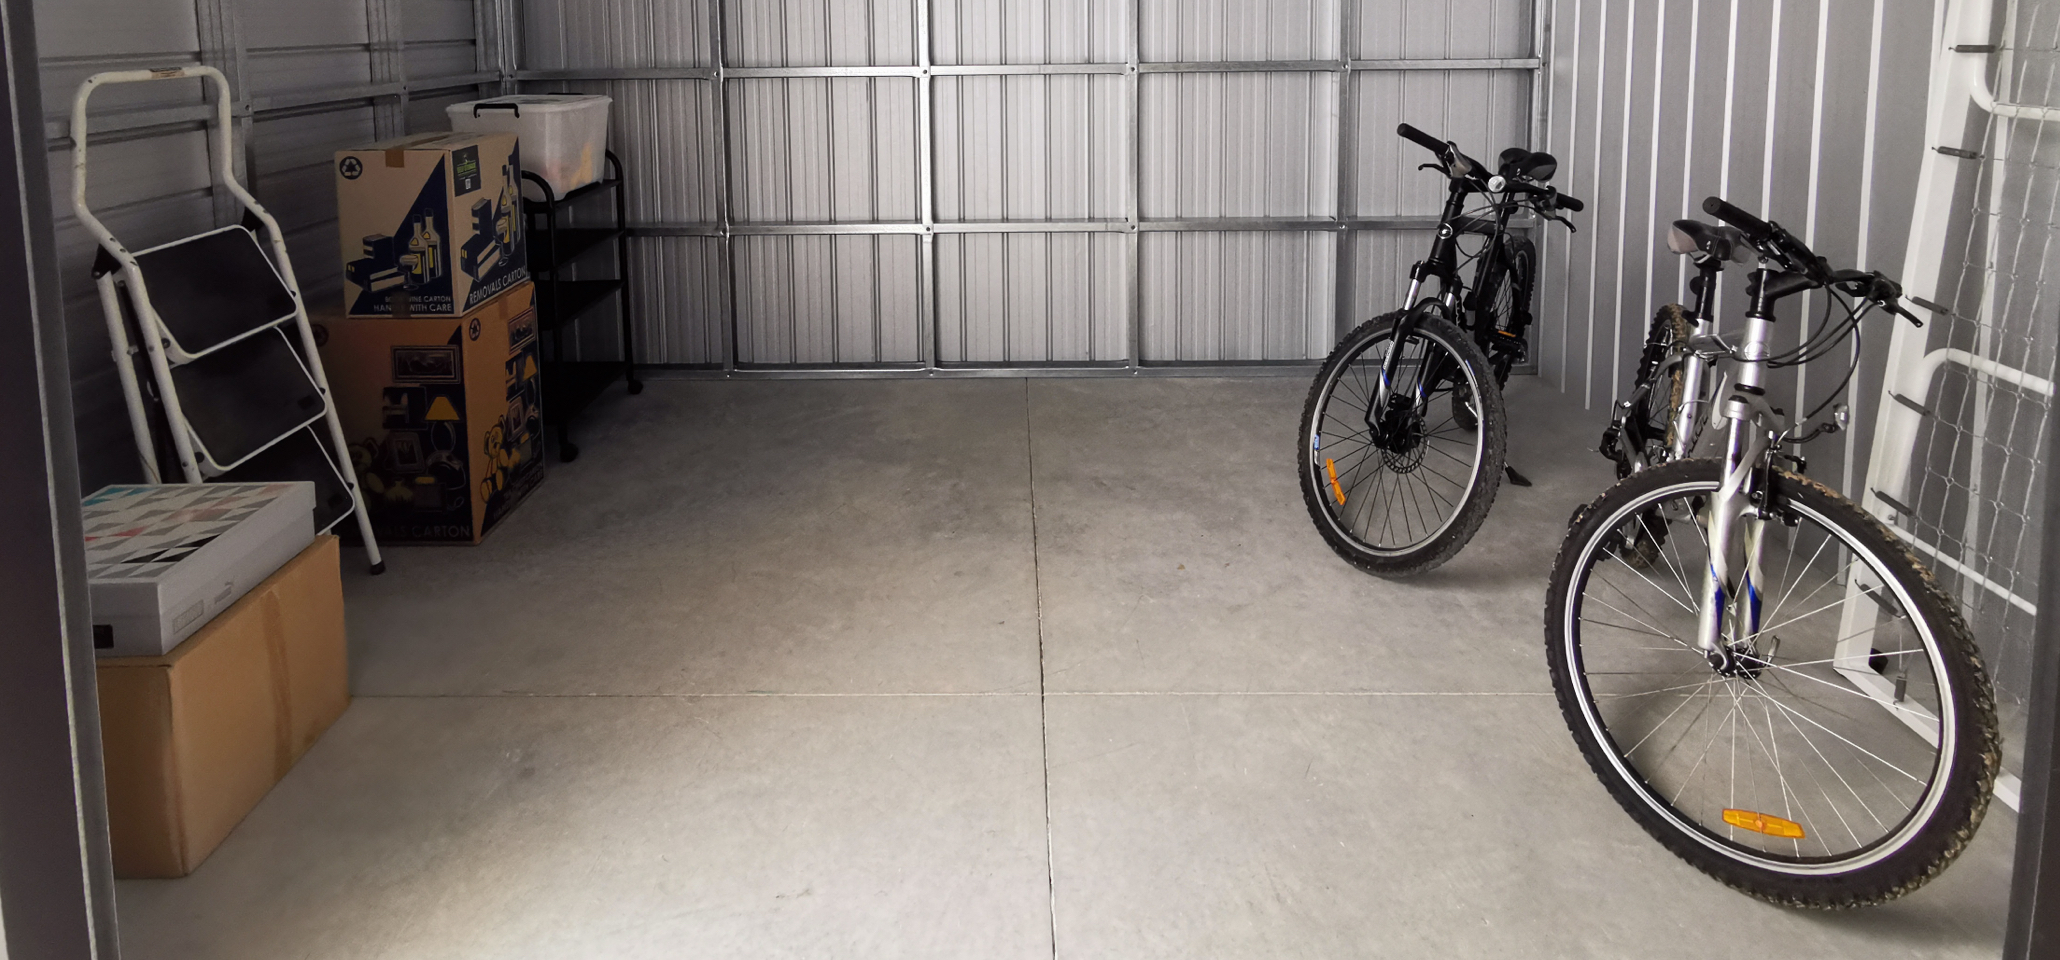 Storage tips to get the most out of your storage unit